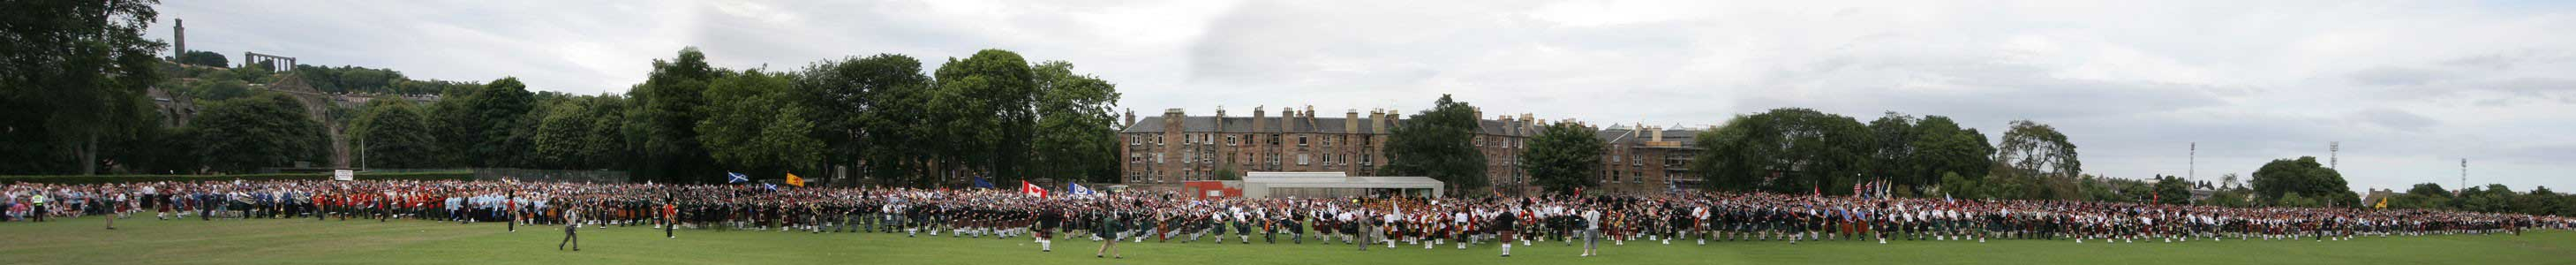 Pipefest 2005, Edinburgh.